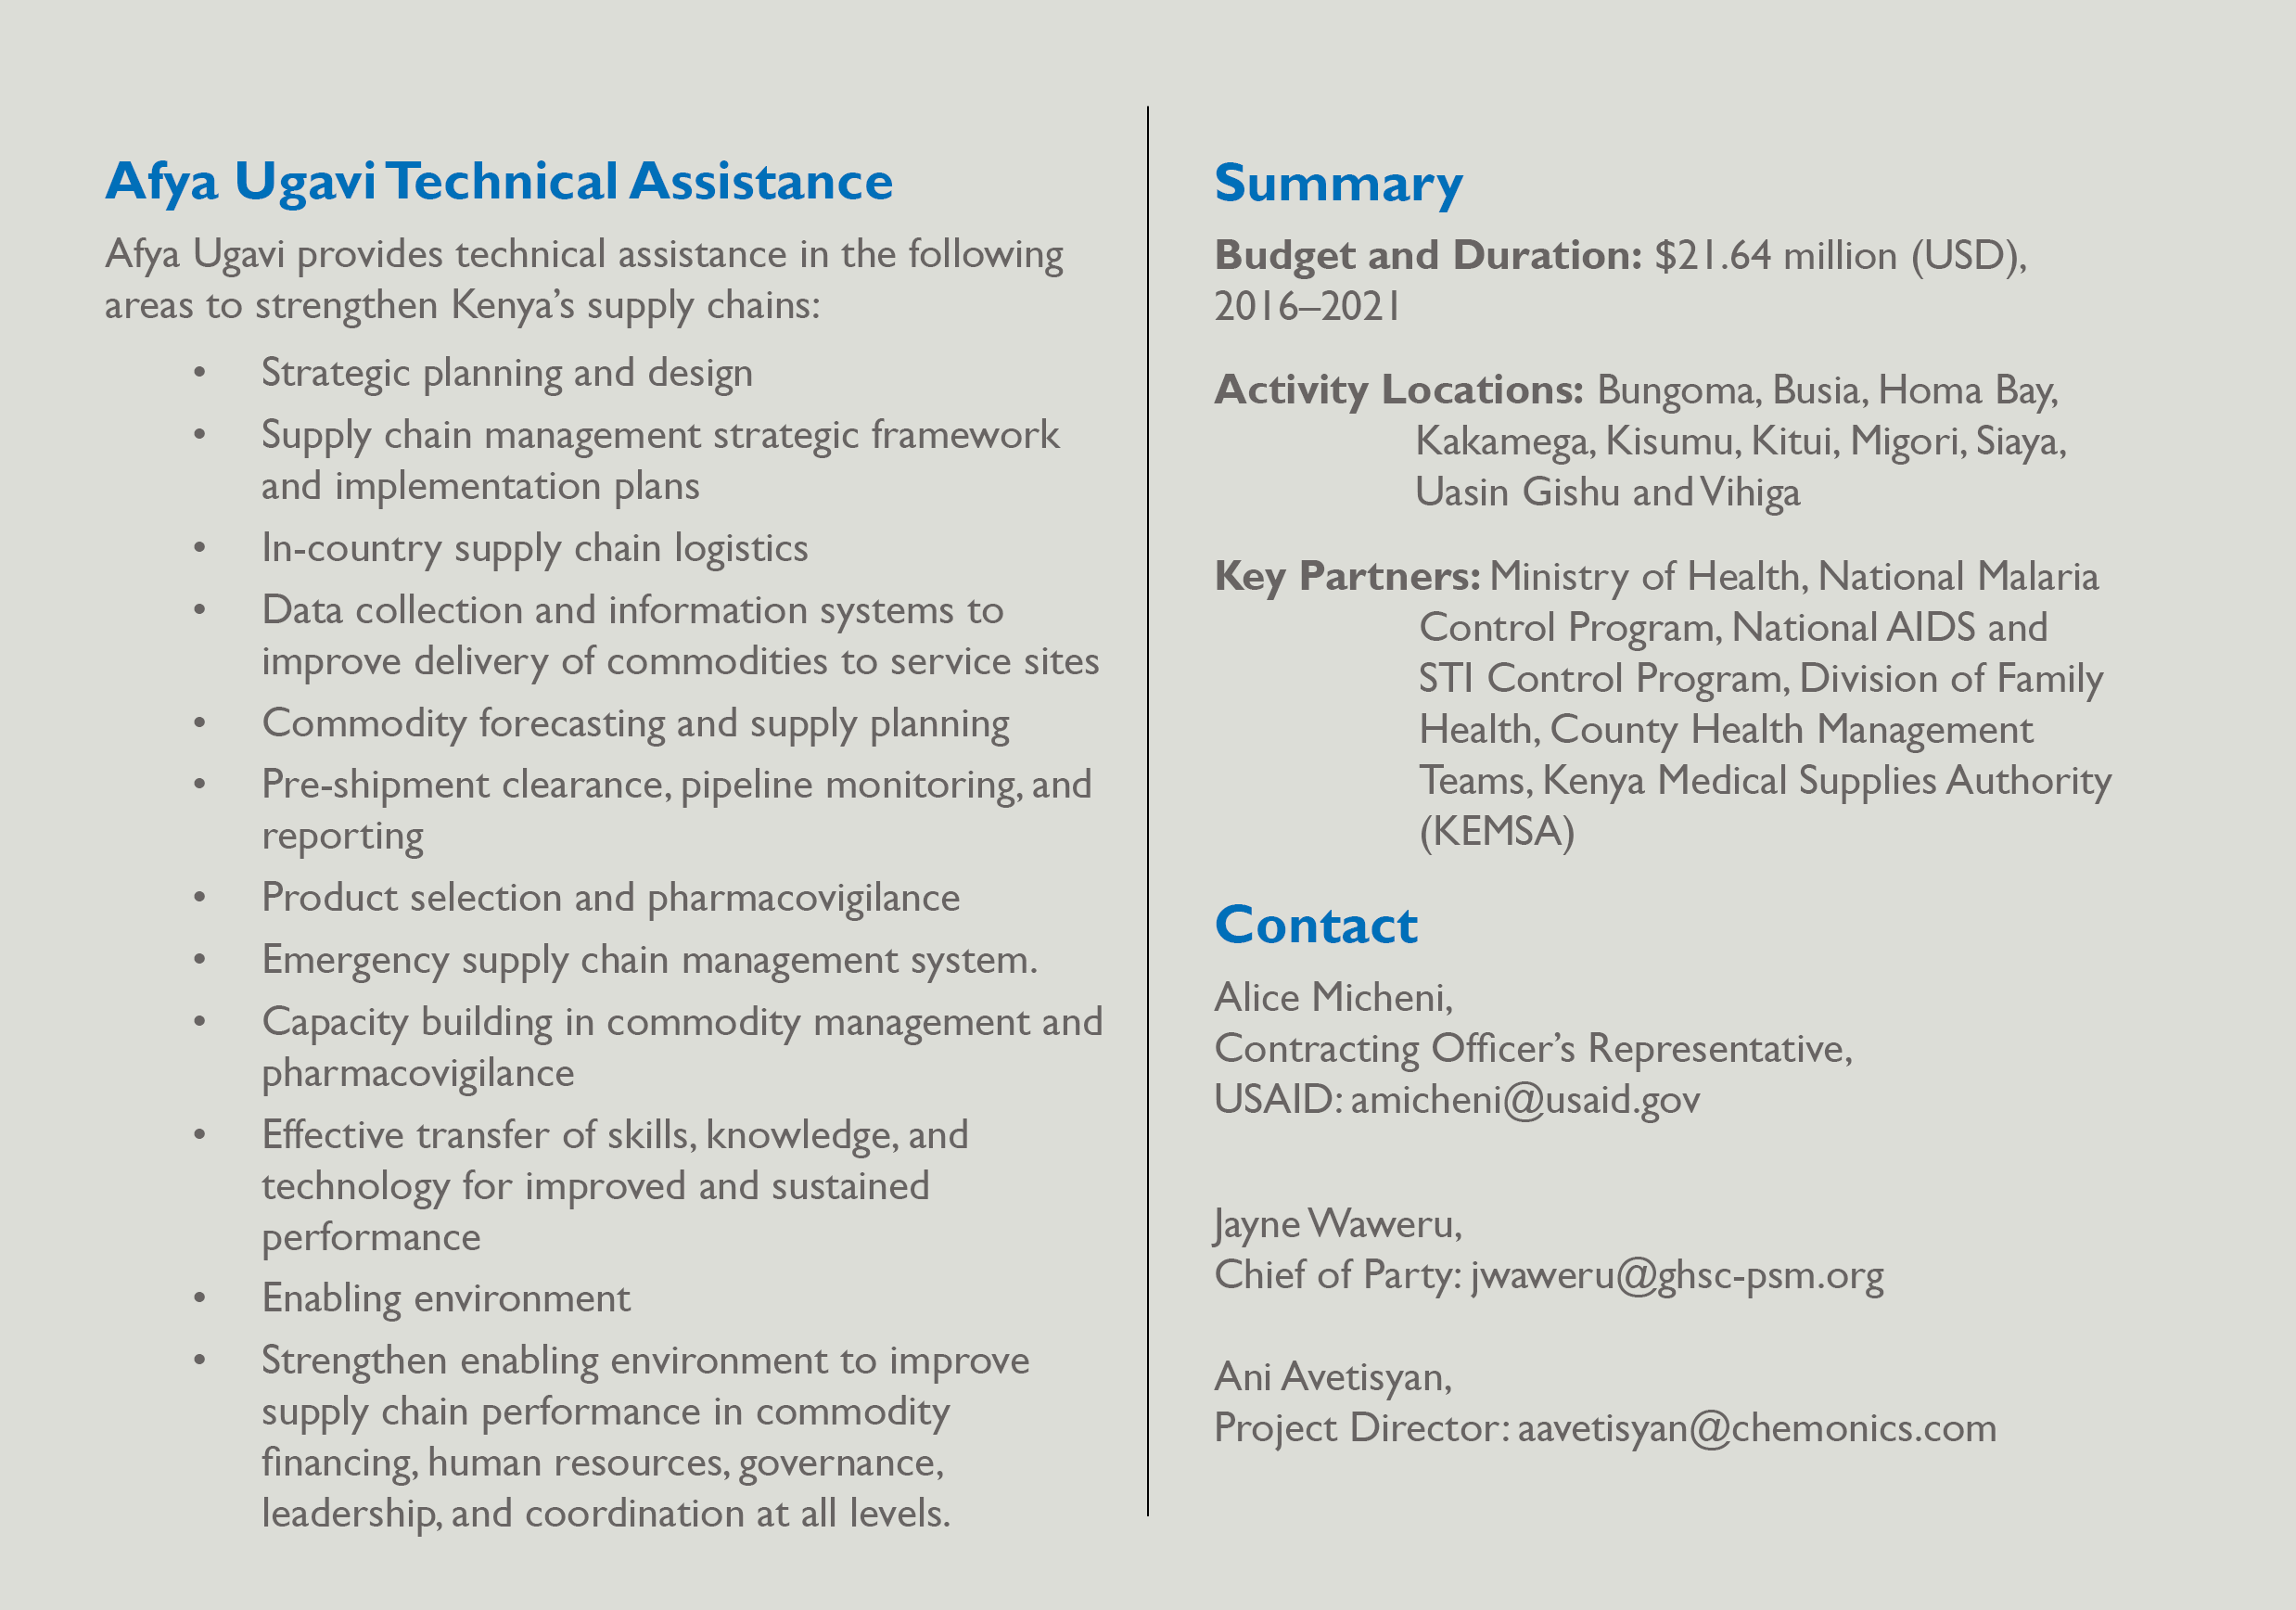 Afya Ugavi Technical Assistance Information